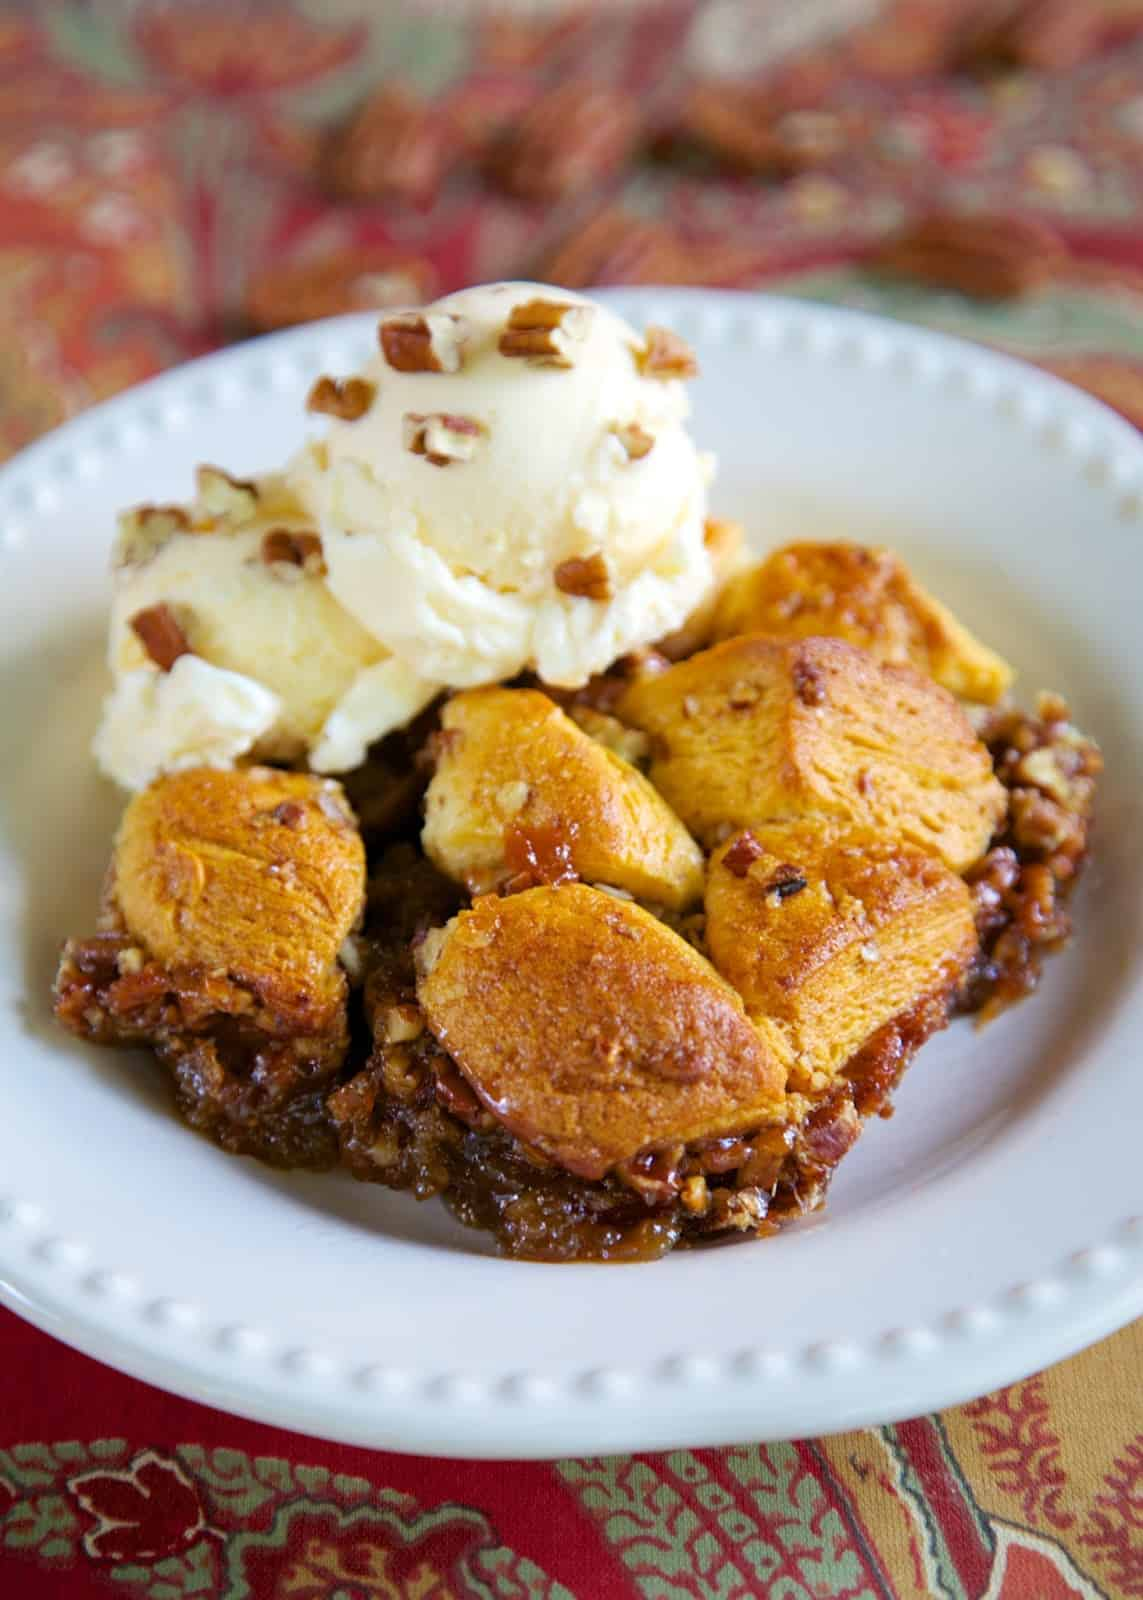 Pecan Pie Bubble Up - pecan pie filling tossed with biscuits - crazy good!! Serve warm with vanilla ice cream! Everyone LOVES this easy dessert recipe. Always the first thing to go!